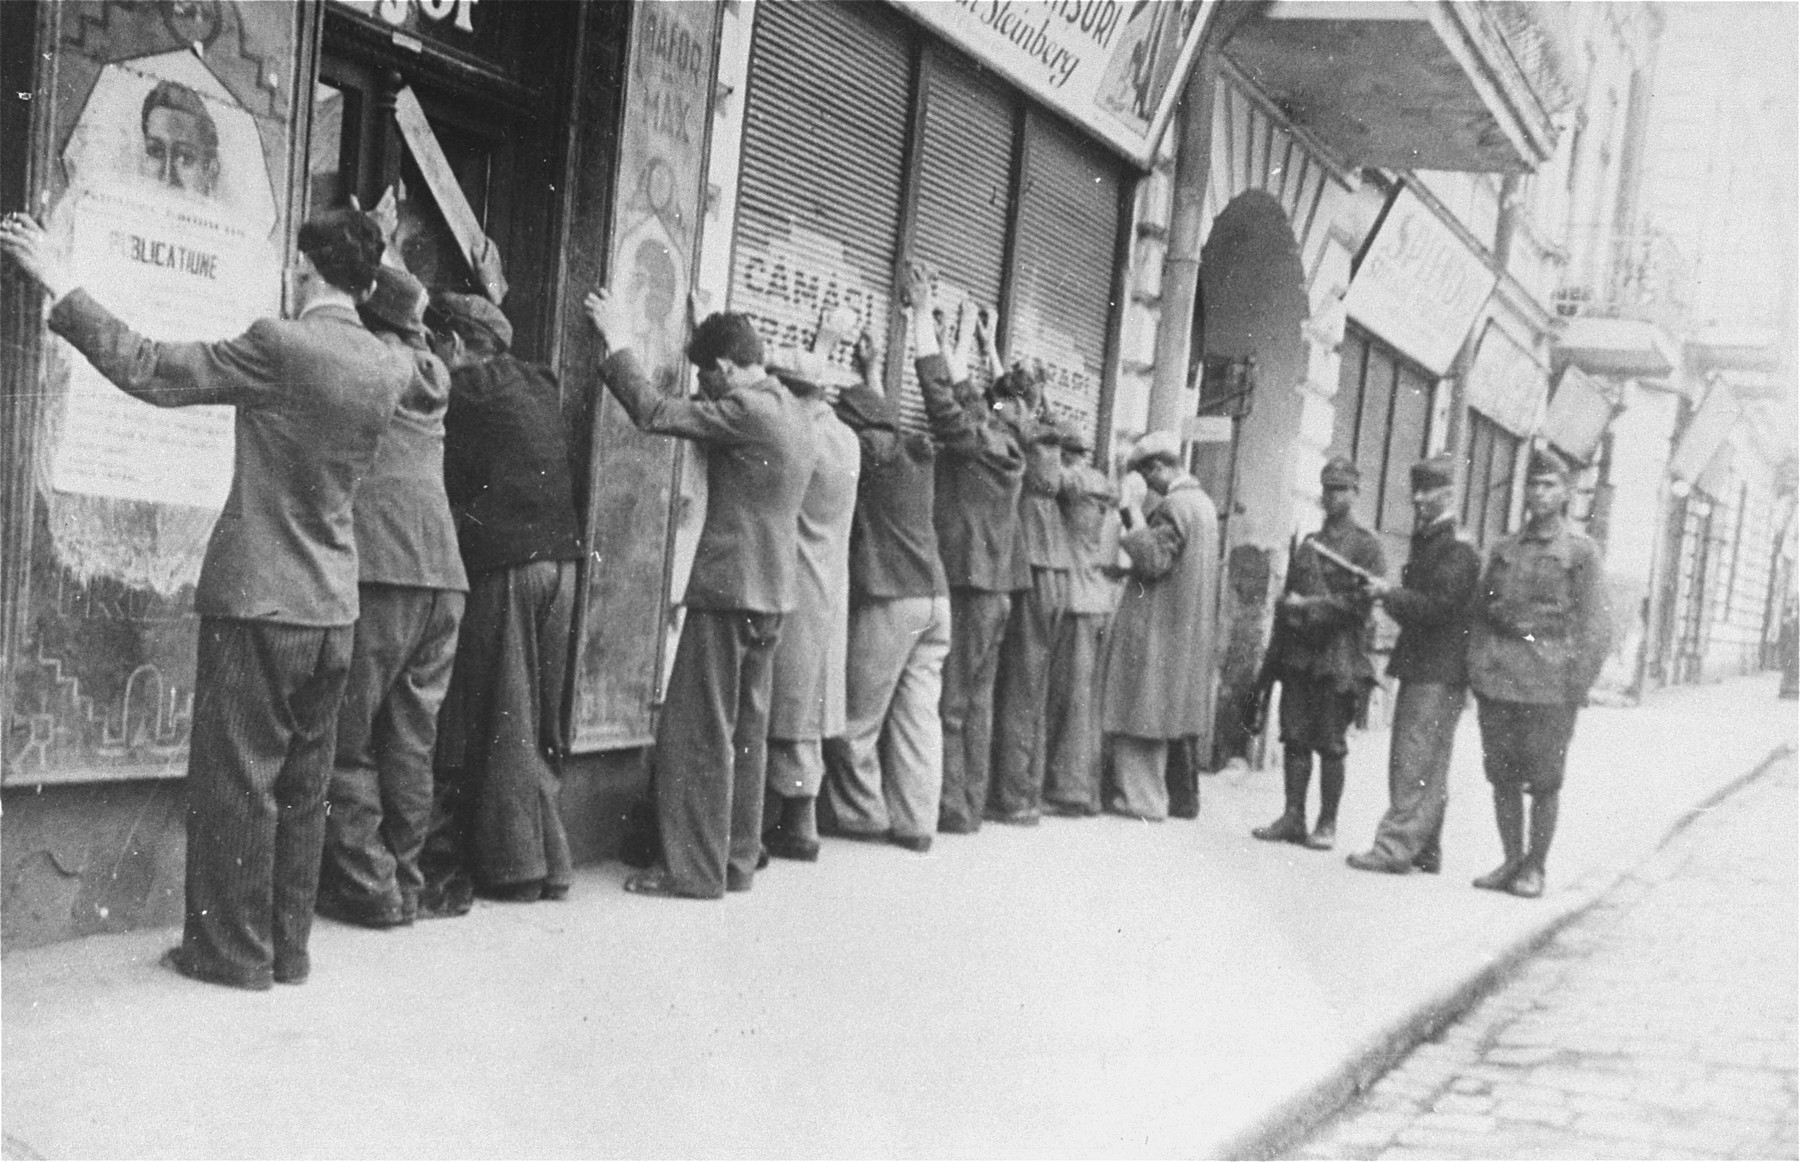 On June 29, 1941, Romanian soldiers and a cadet arrest a group of Jews at 157 I.C. Bratianu Street during the Iasi pogrom.